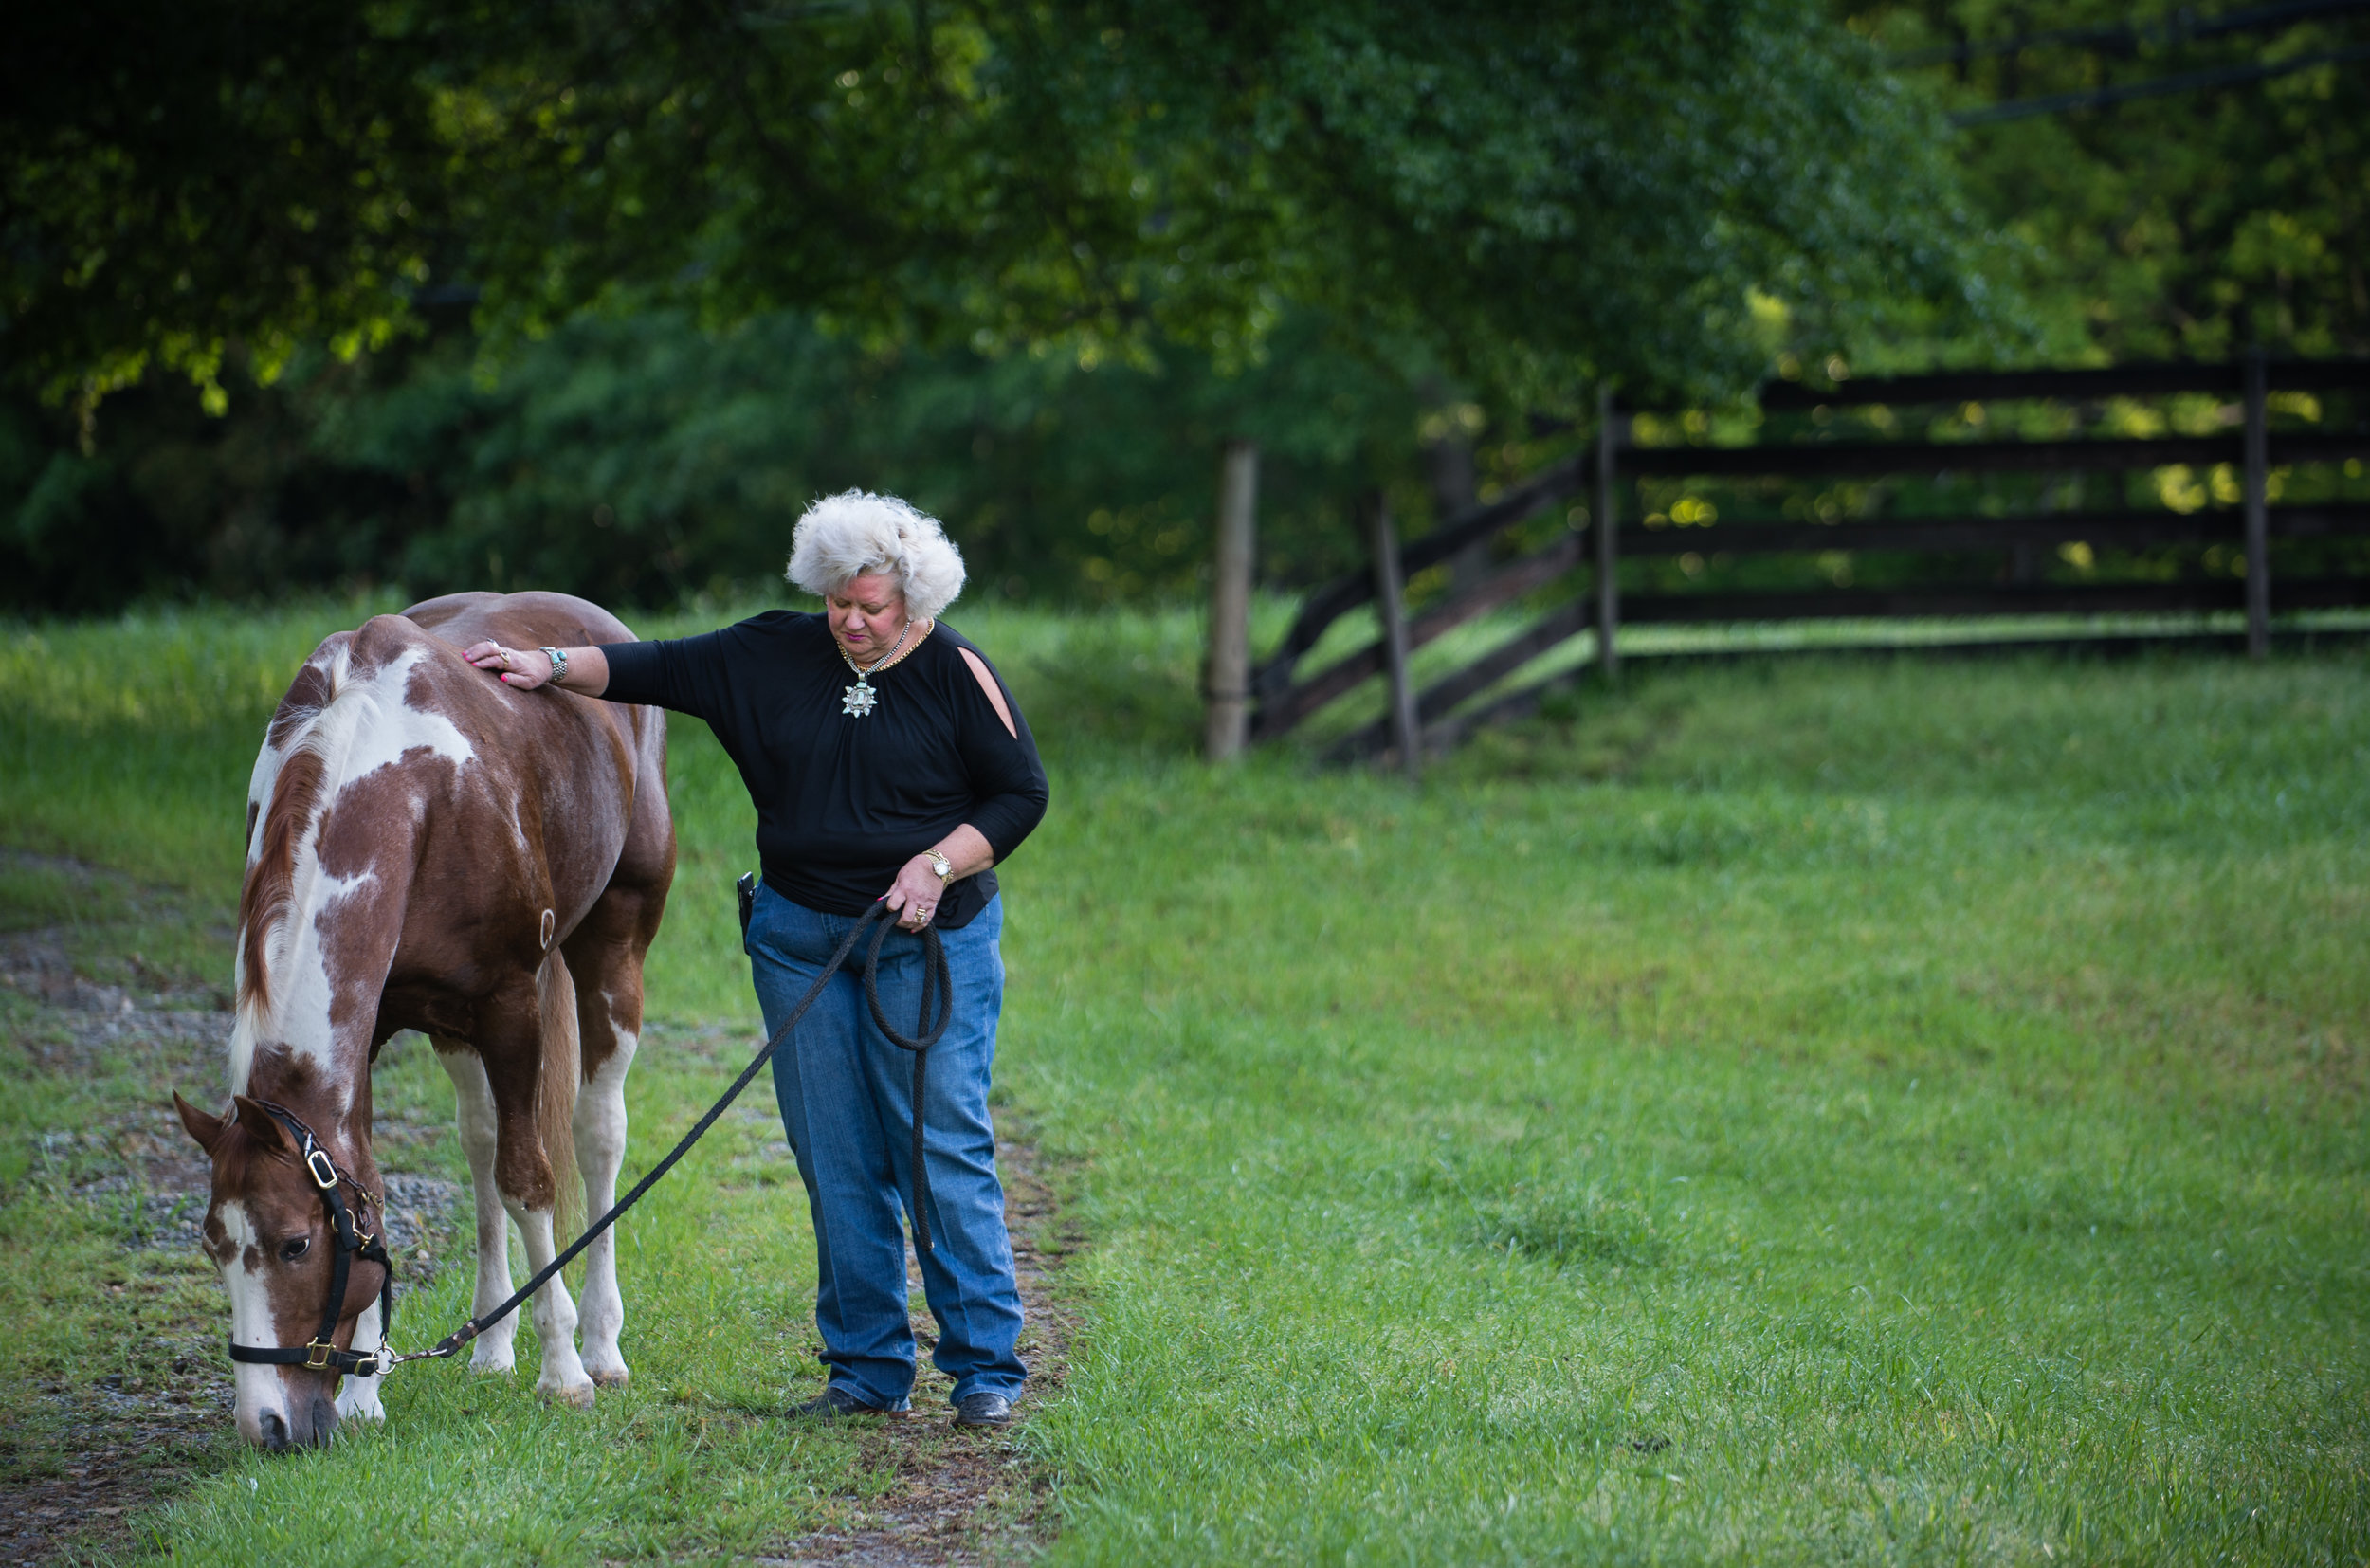 Ann Jones is a equine professional and cattle rancher with property in Georgia and Oklahoma. She's shown here with one of her favorite horses, Delta, on her farm, Jones Cutting Horses, in Flowery Branch, Ga. in April 2017.